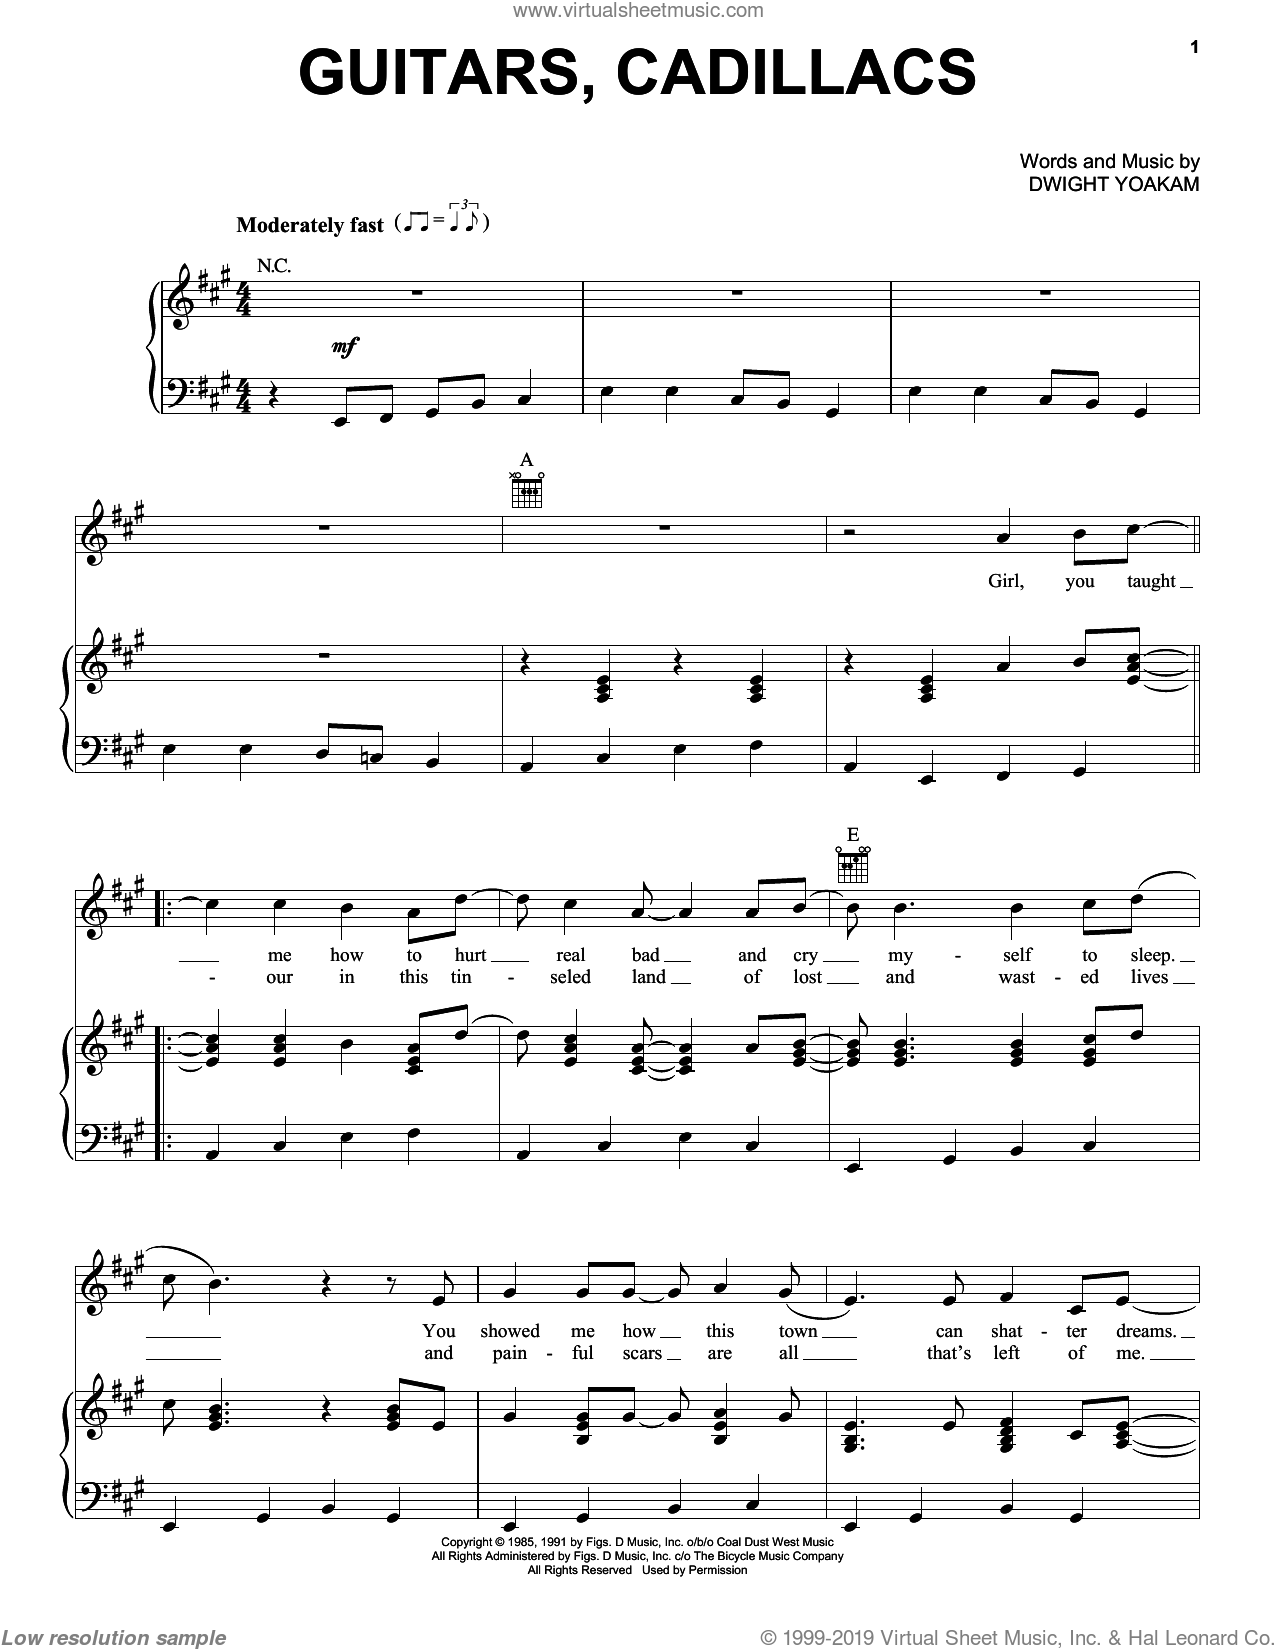 Guitars, Cadillacs sheet music for voice, piano or guitar by Dwight Yoakam, intermediate